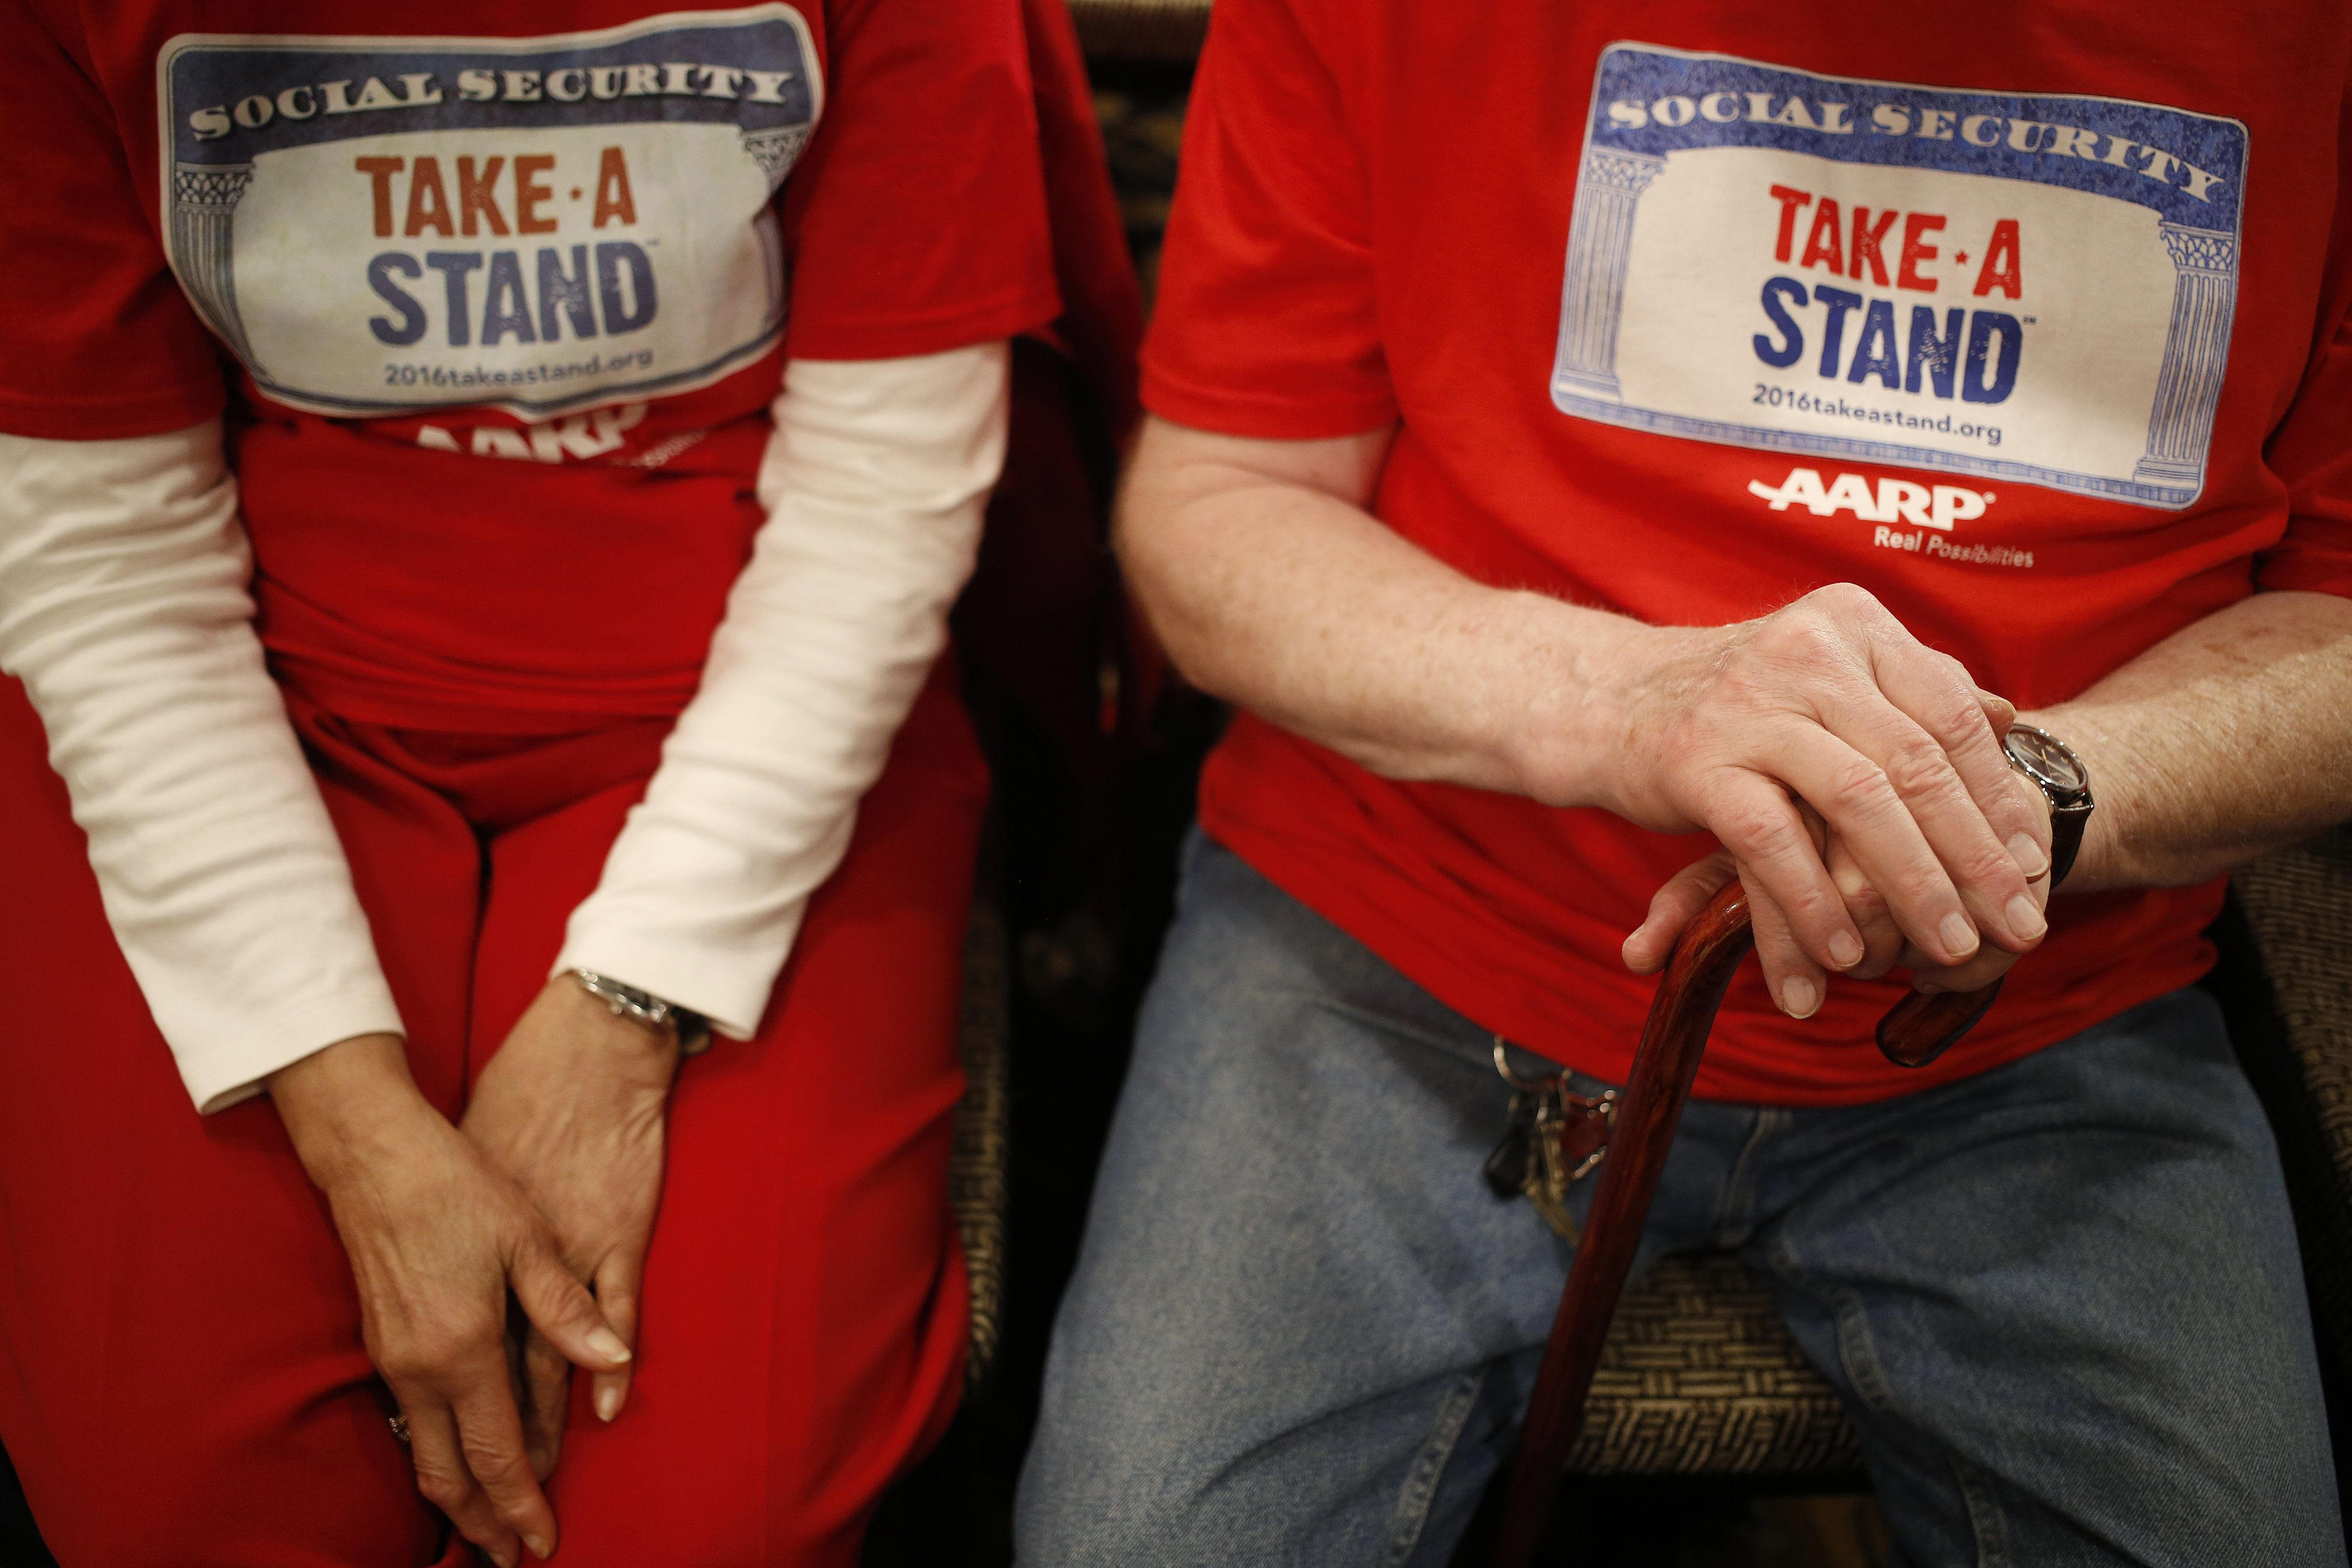 AARP activistsawait the start of an event for Ohio Gov. John Kasich (R) in Madison, Wisconsin, onMarch 28. The in